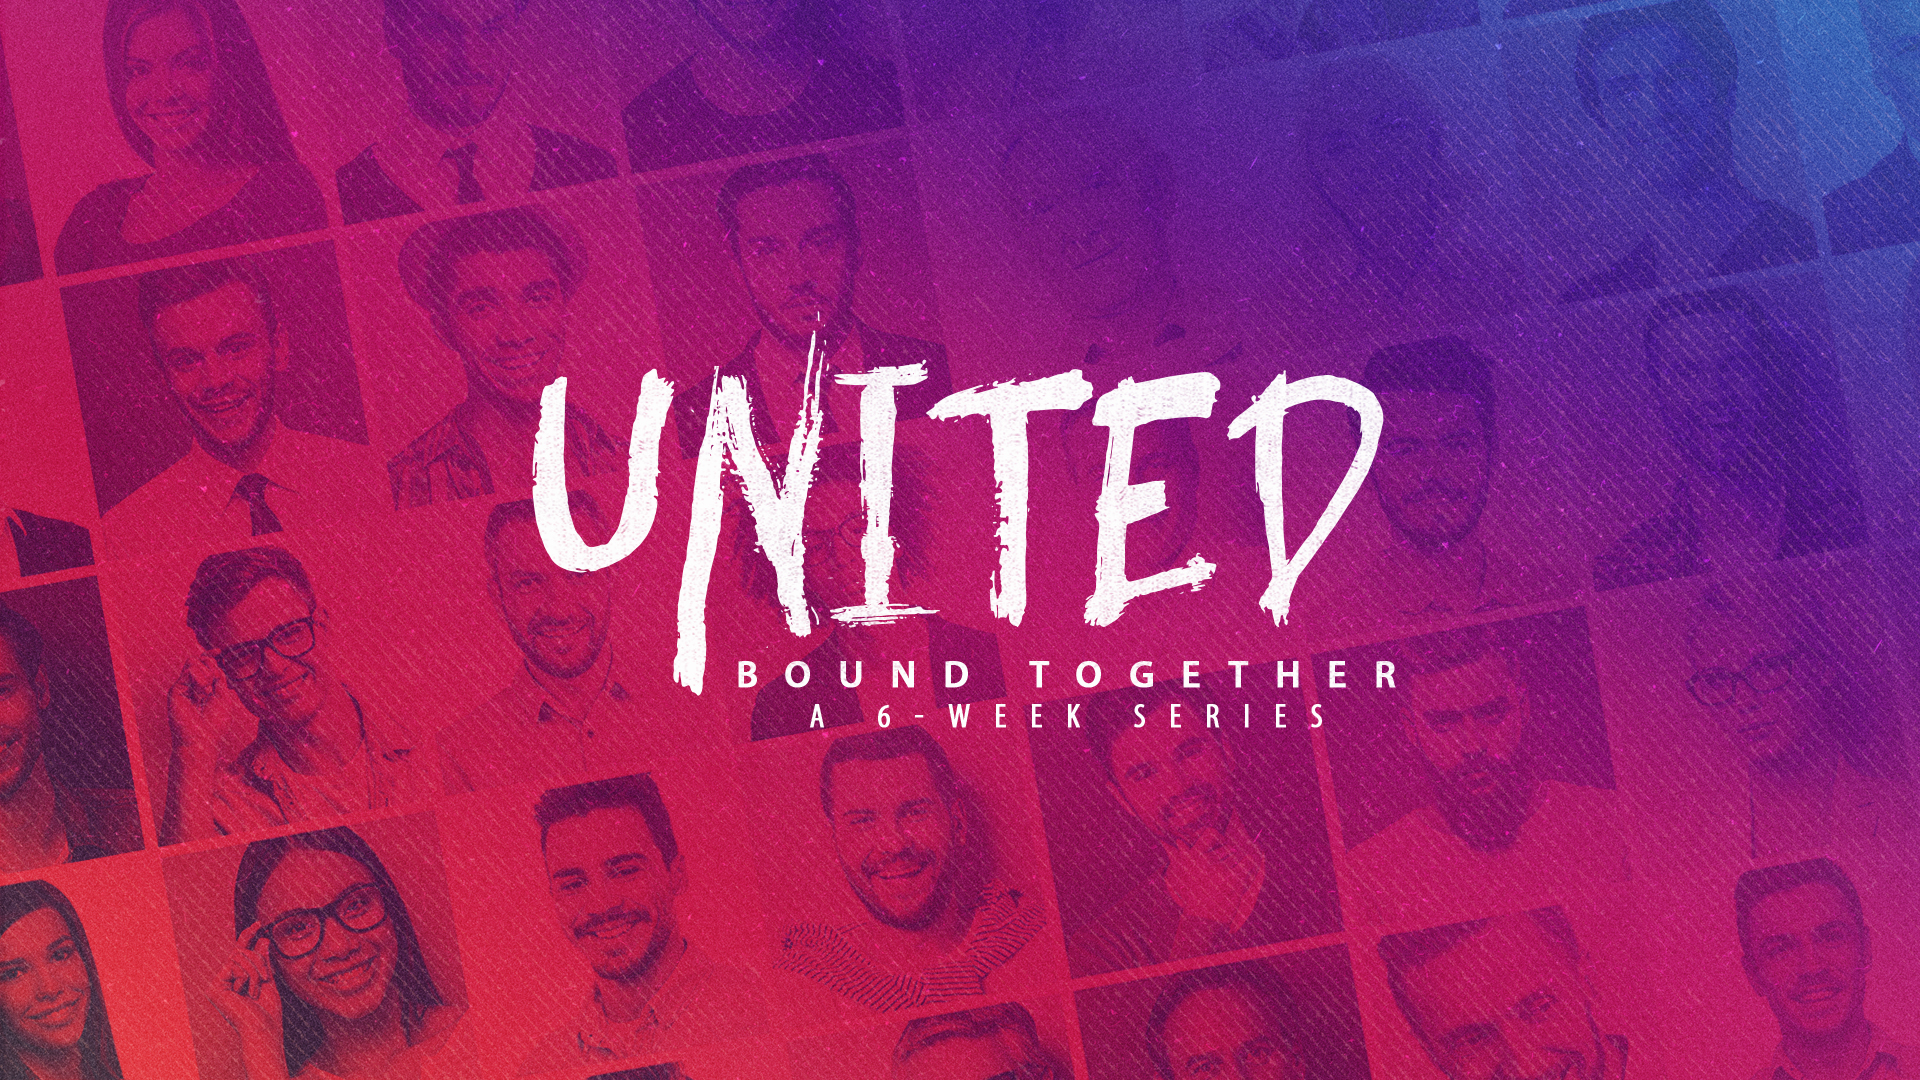 UNITED: Bound Together